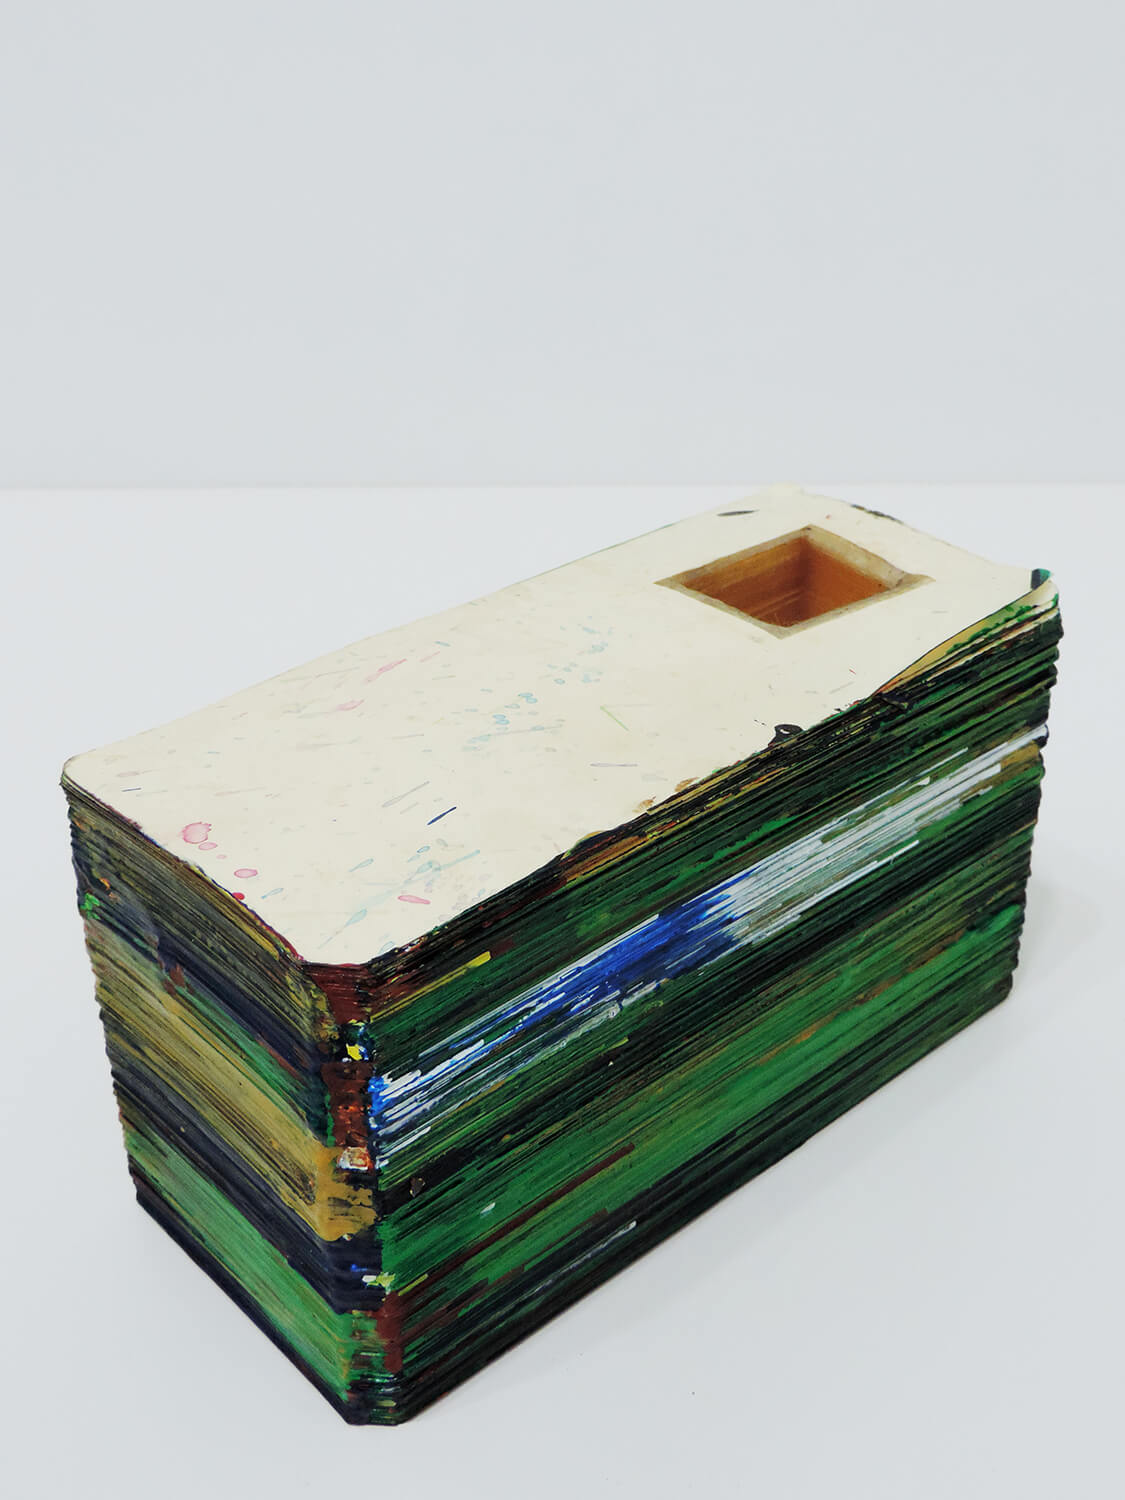 <b>Untitled</b><br>Acrylic on laminated paper 19 × 8.5 × 10.9 cm 2007